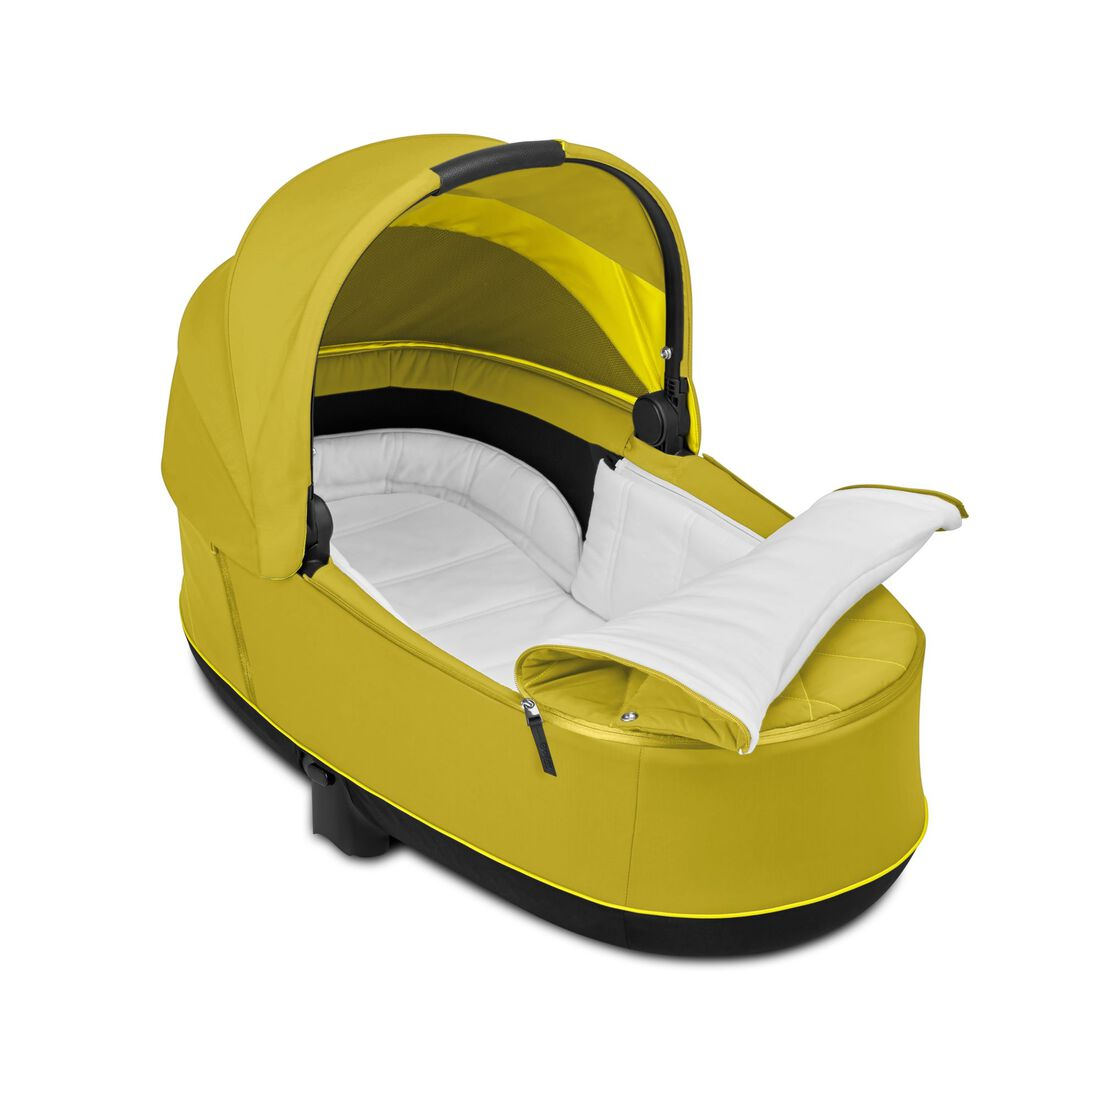 CYBEX Priam Lux Carry Cot - Mustard Yellow in Mustard Yellow large Bild 3